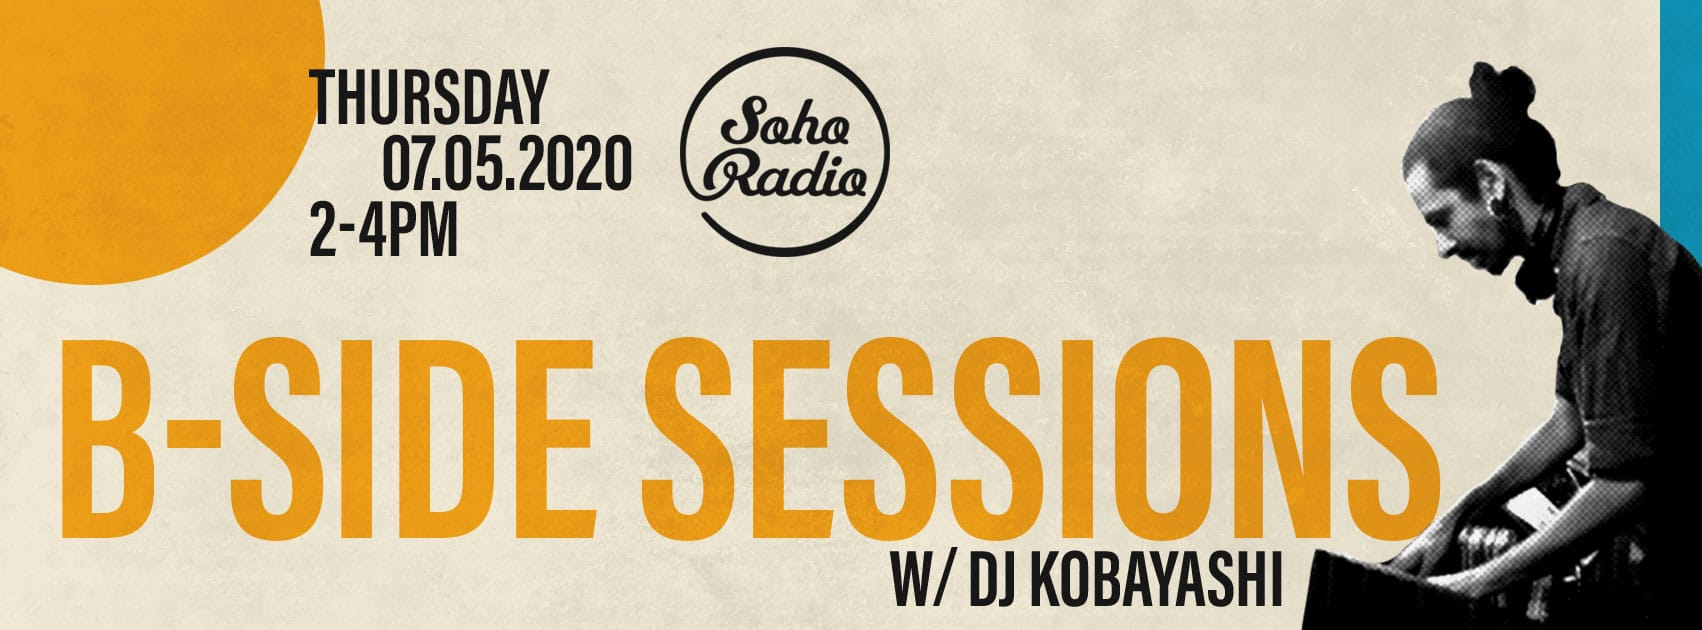 Soho Radio | B-side Sessions | 07/05/20 | Waaju, Kutiman and more